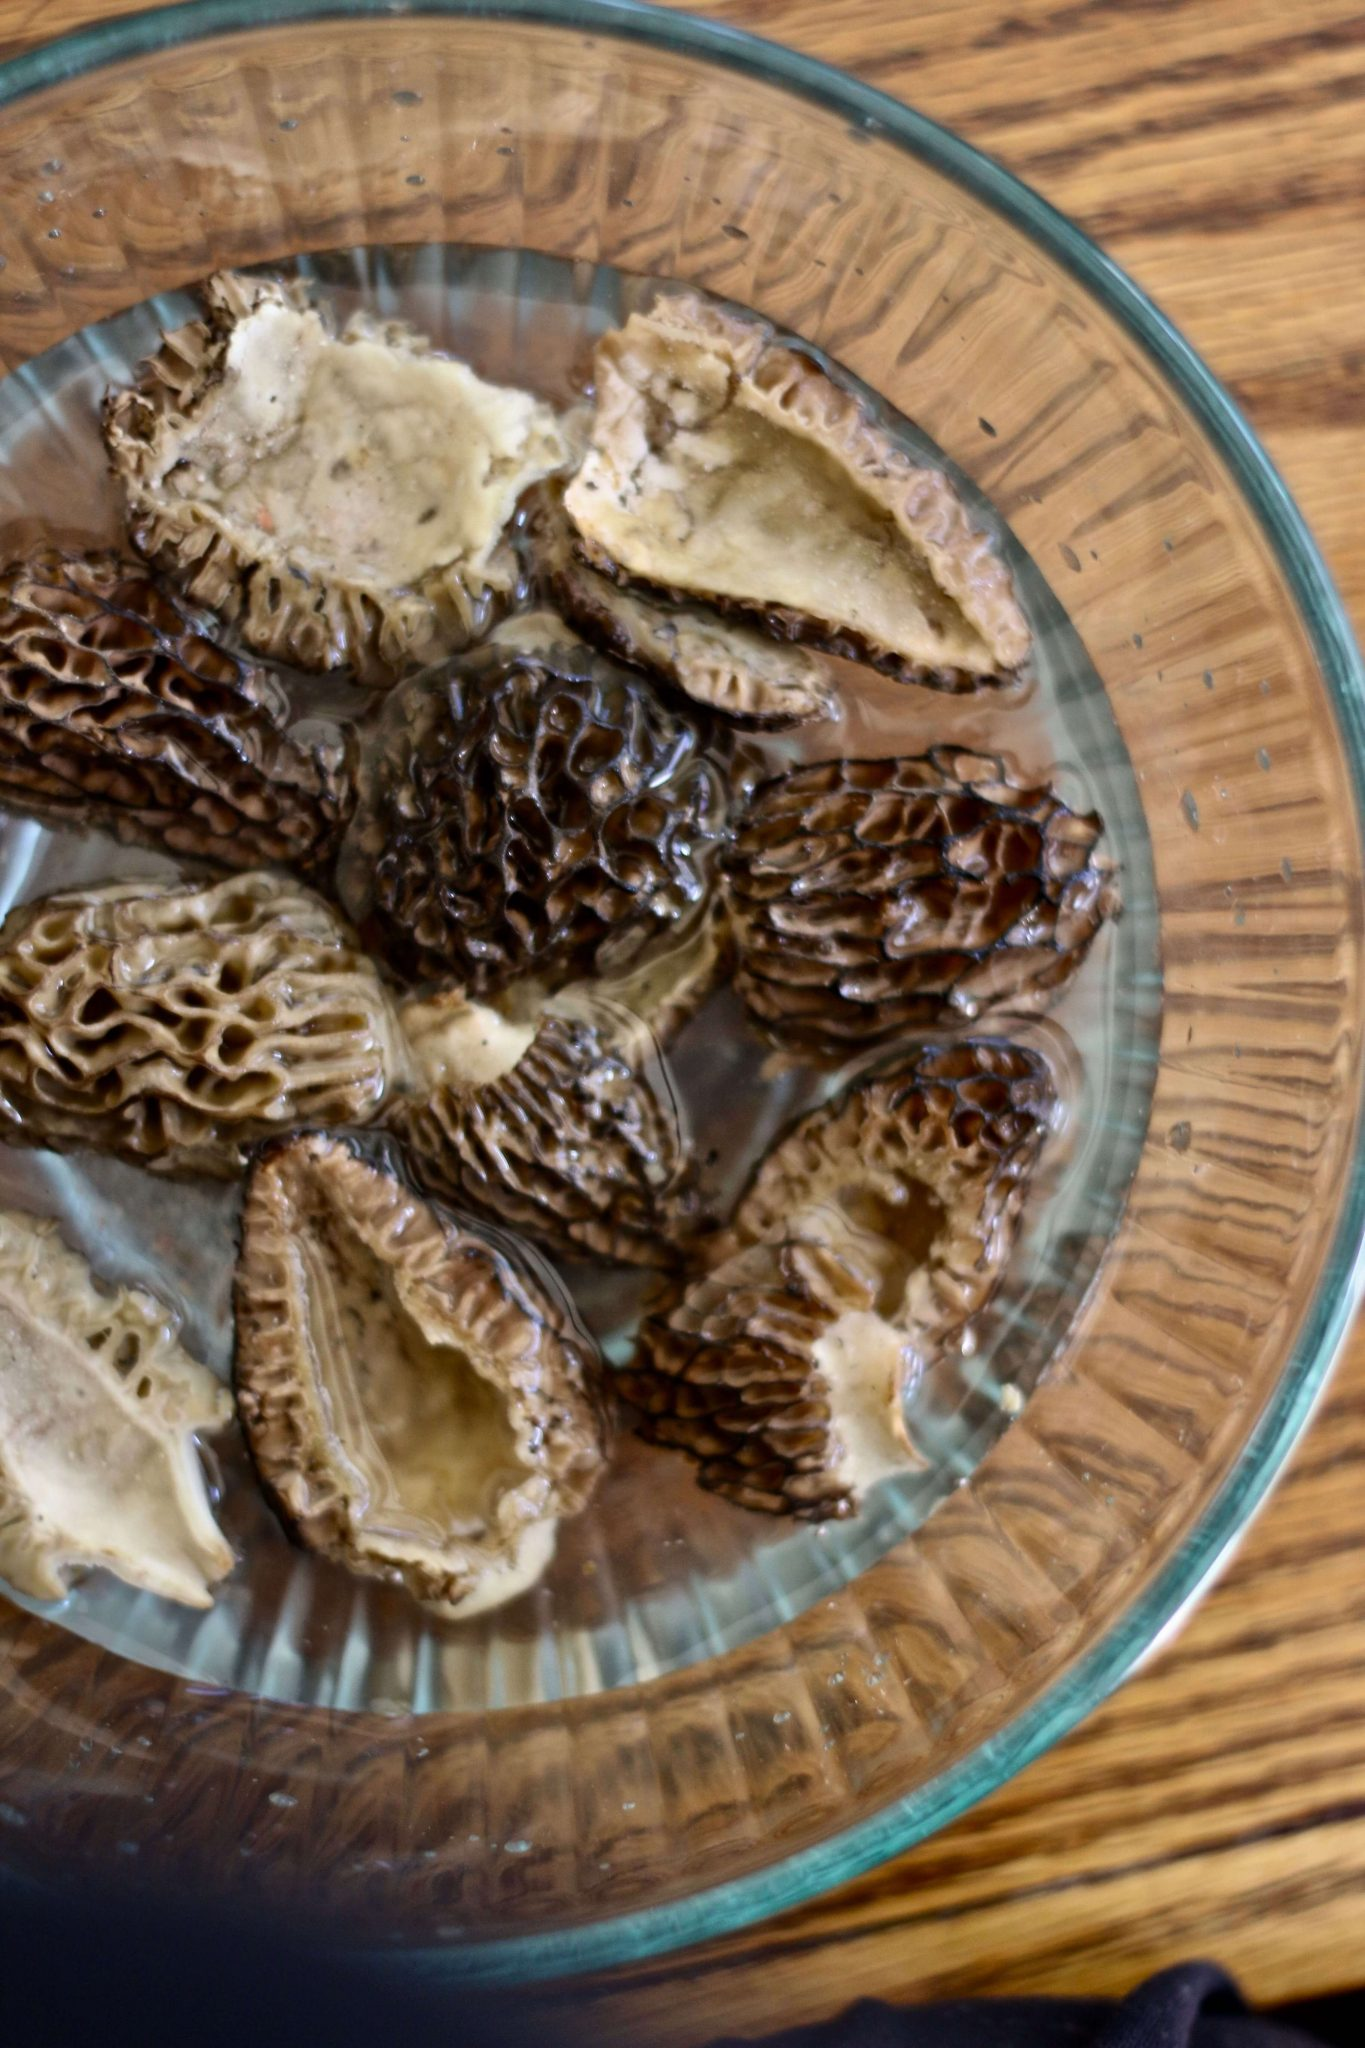 Hmmm, soaking the Morel mushrooms in salt water. Prepping for Wild Morel Mushroom Soup, an easy and delicious recipe from Forgotten Way Farms.